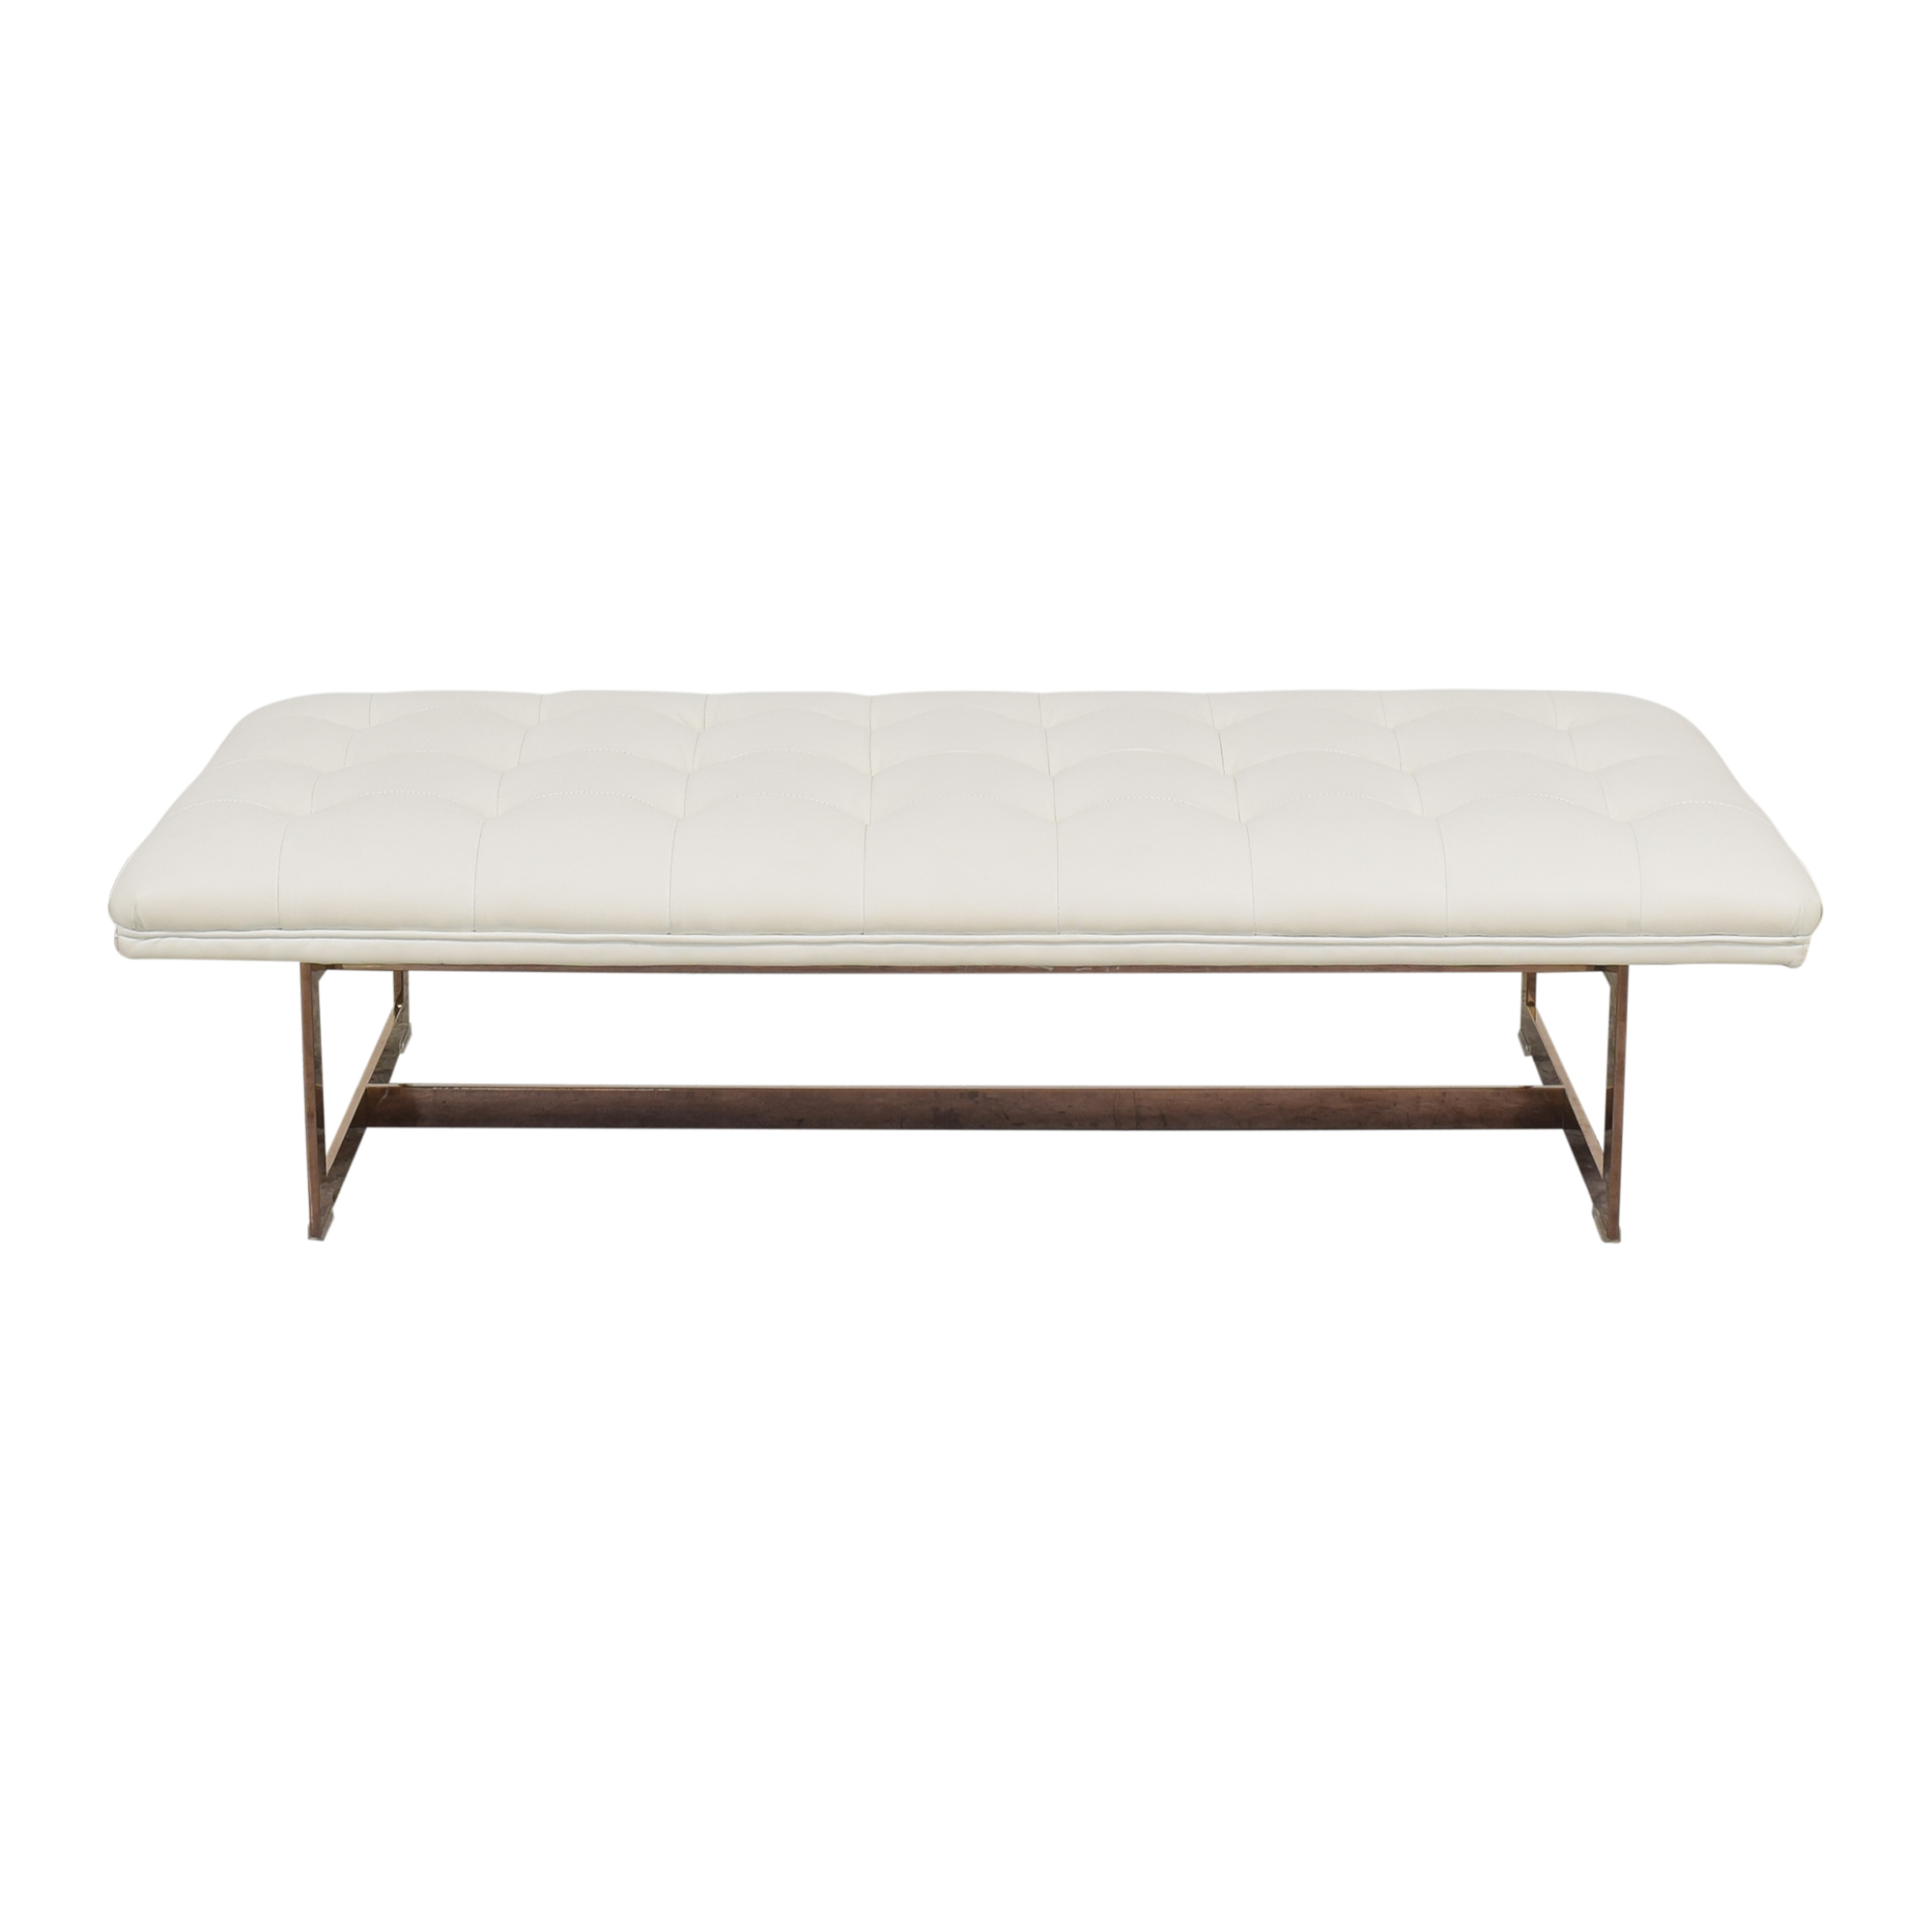 Sunpan Sunpan Upholstered Tufted Bench coupon